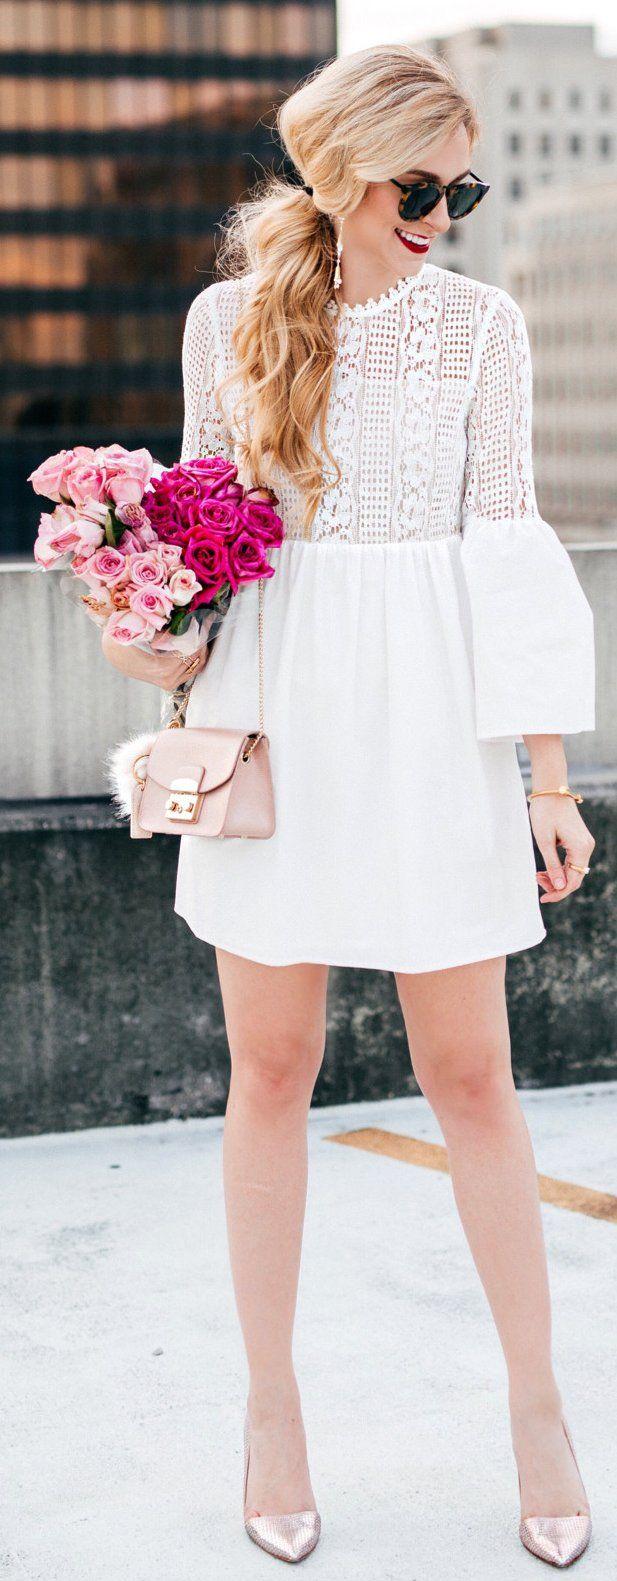 White Lace Dress / Metallic Pumps